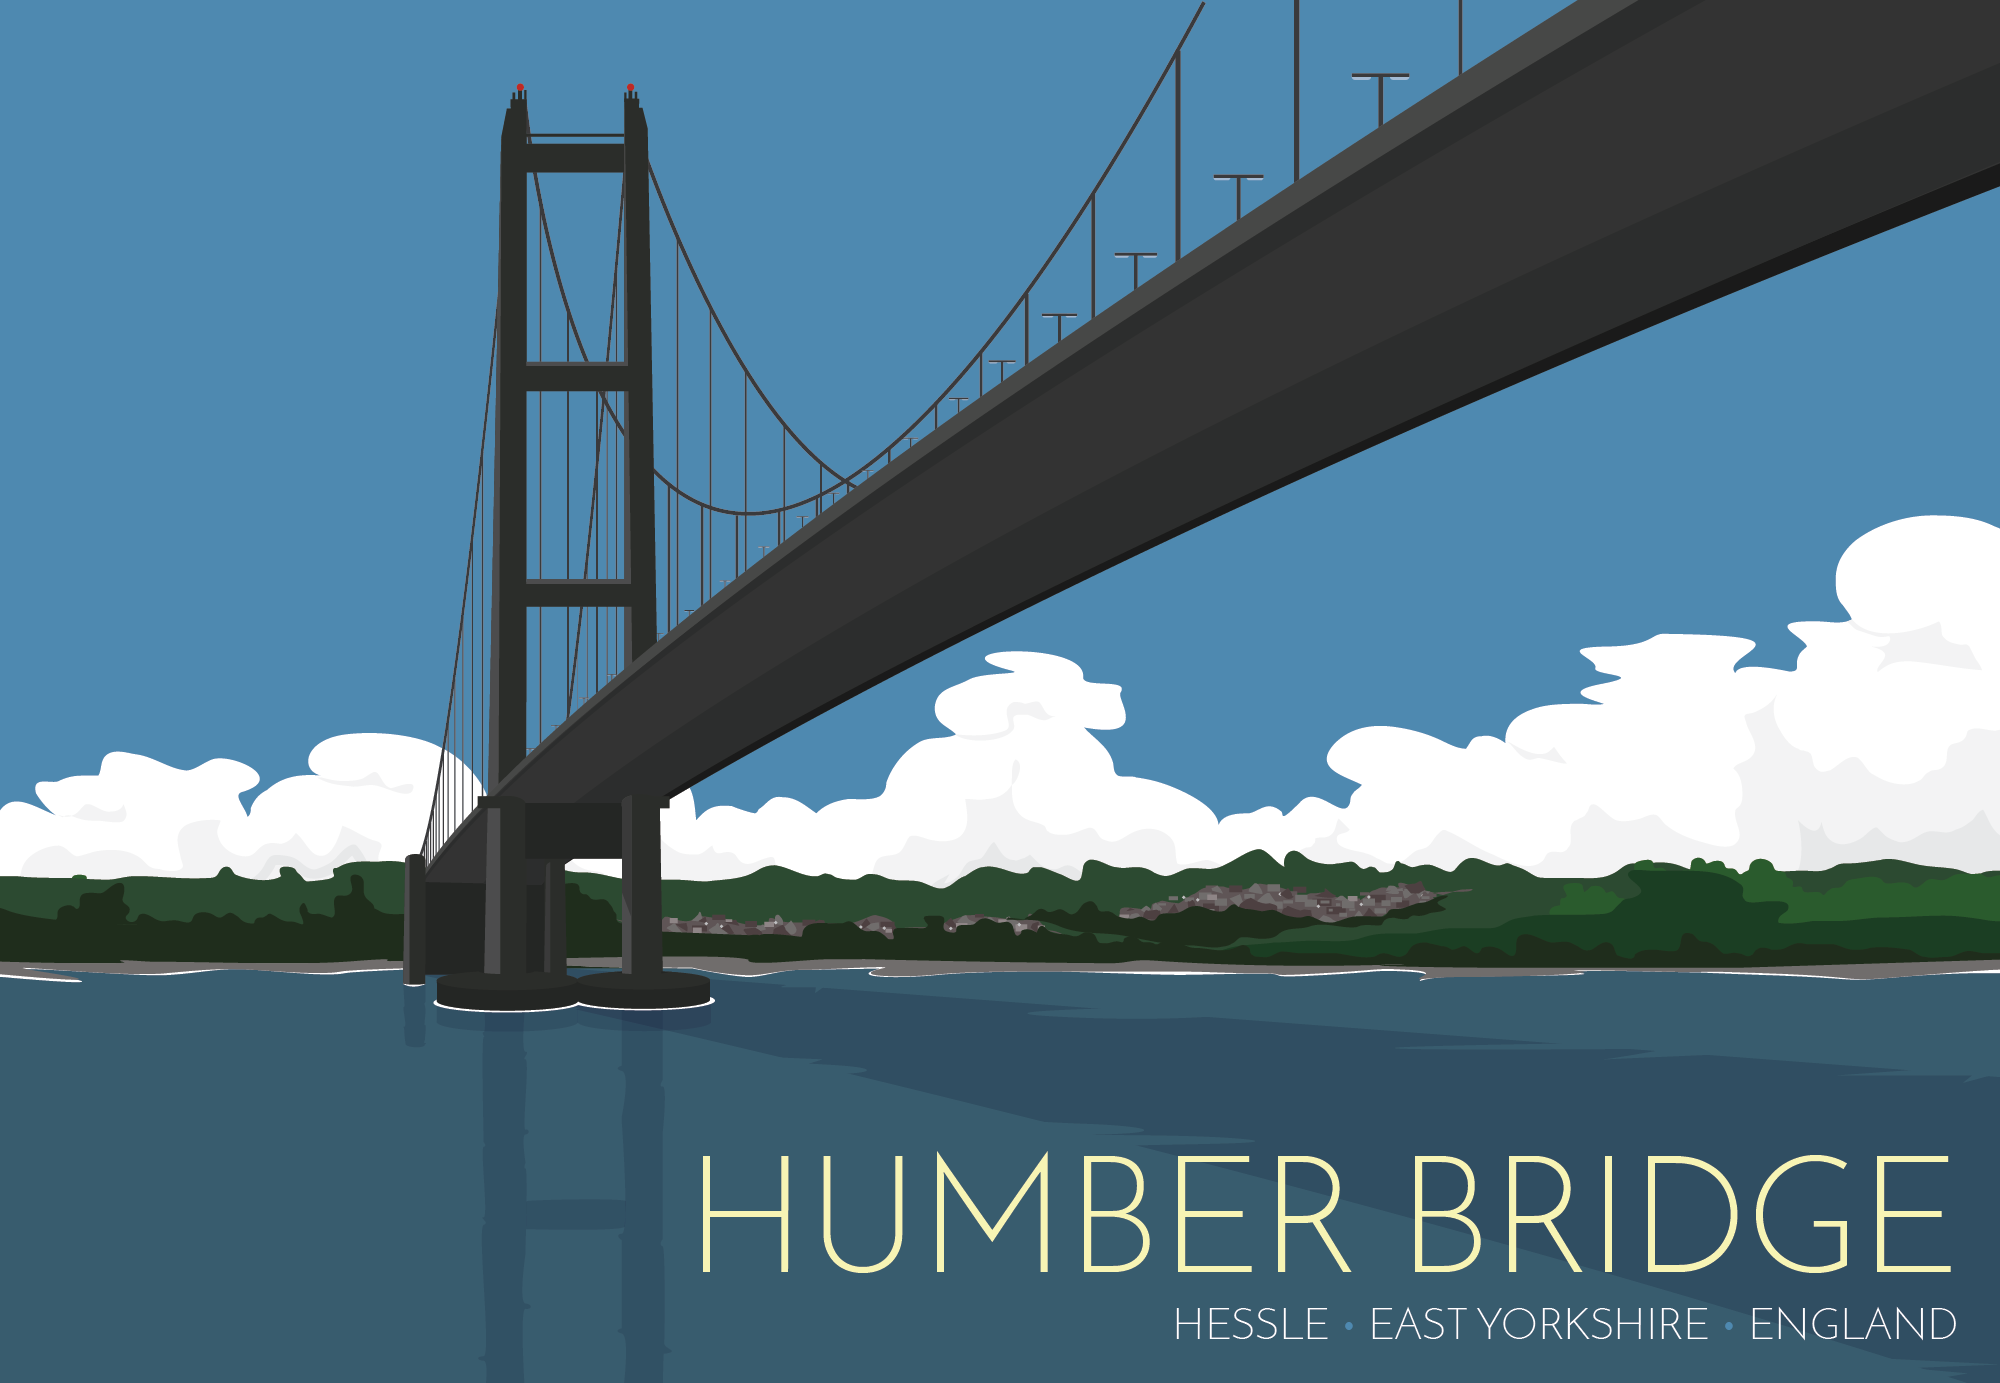 This is a drawing of The Humber Bridge